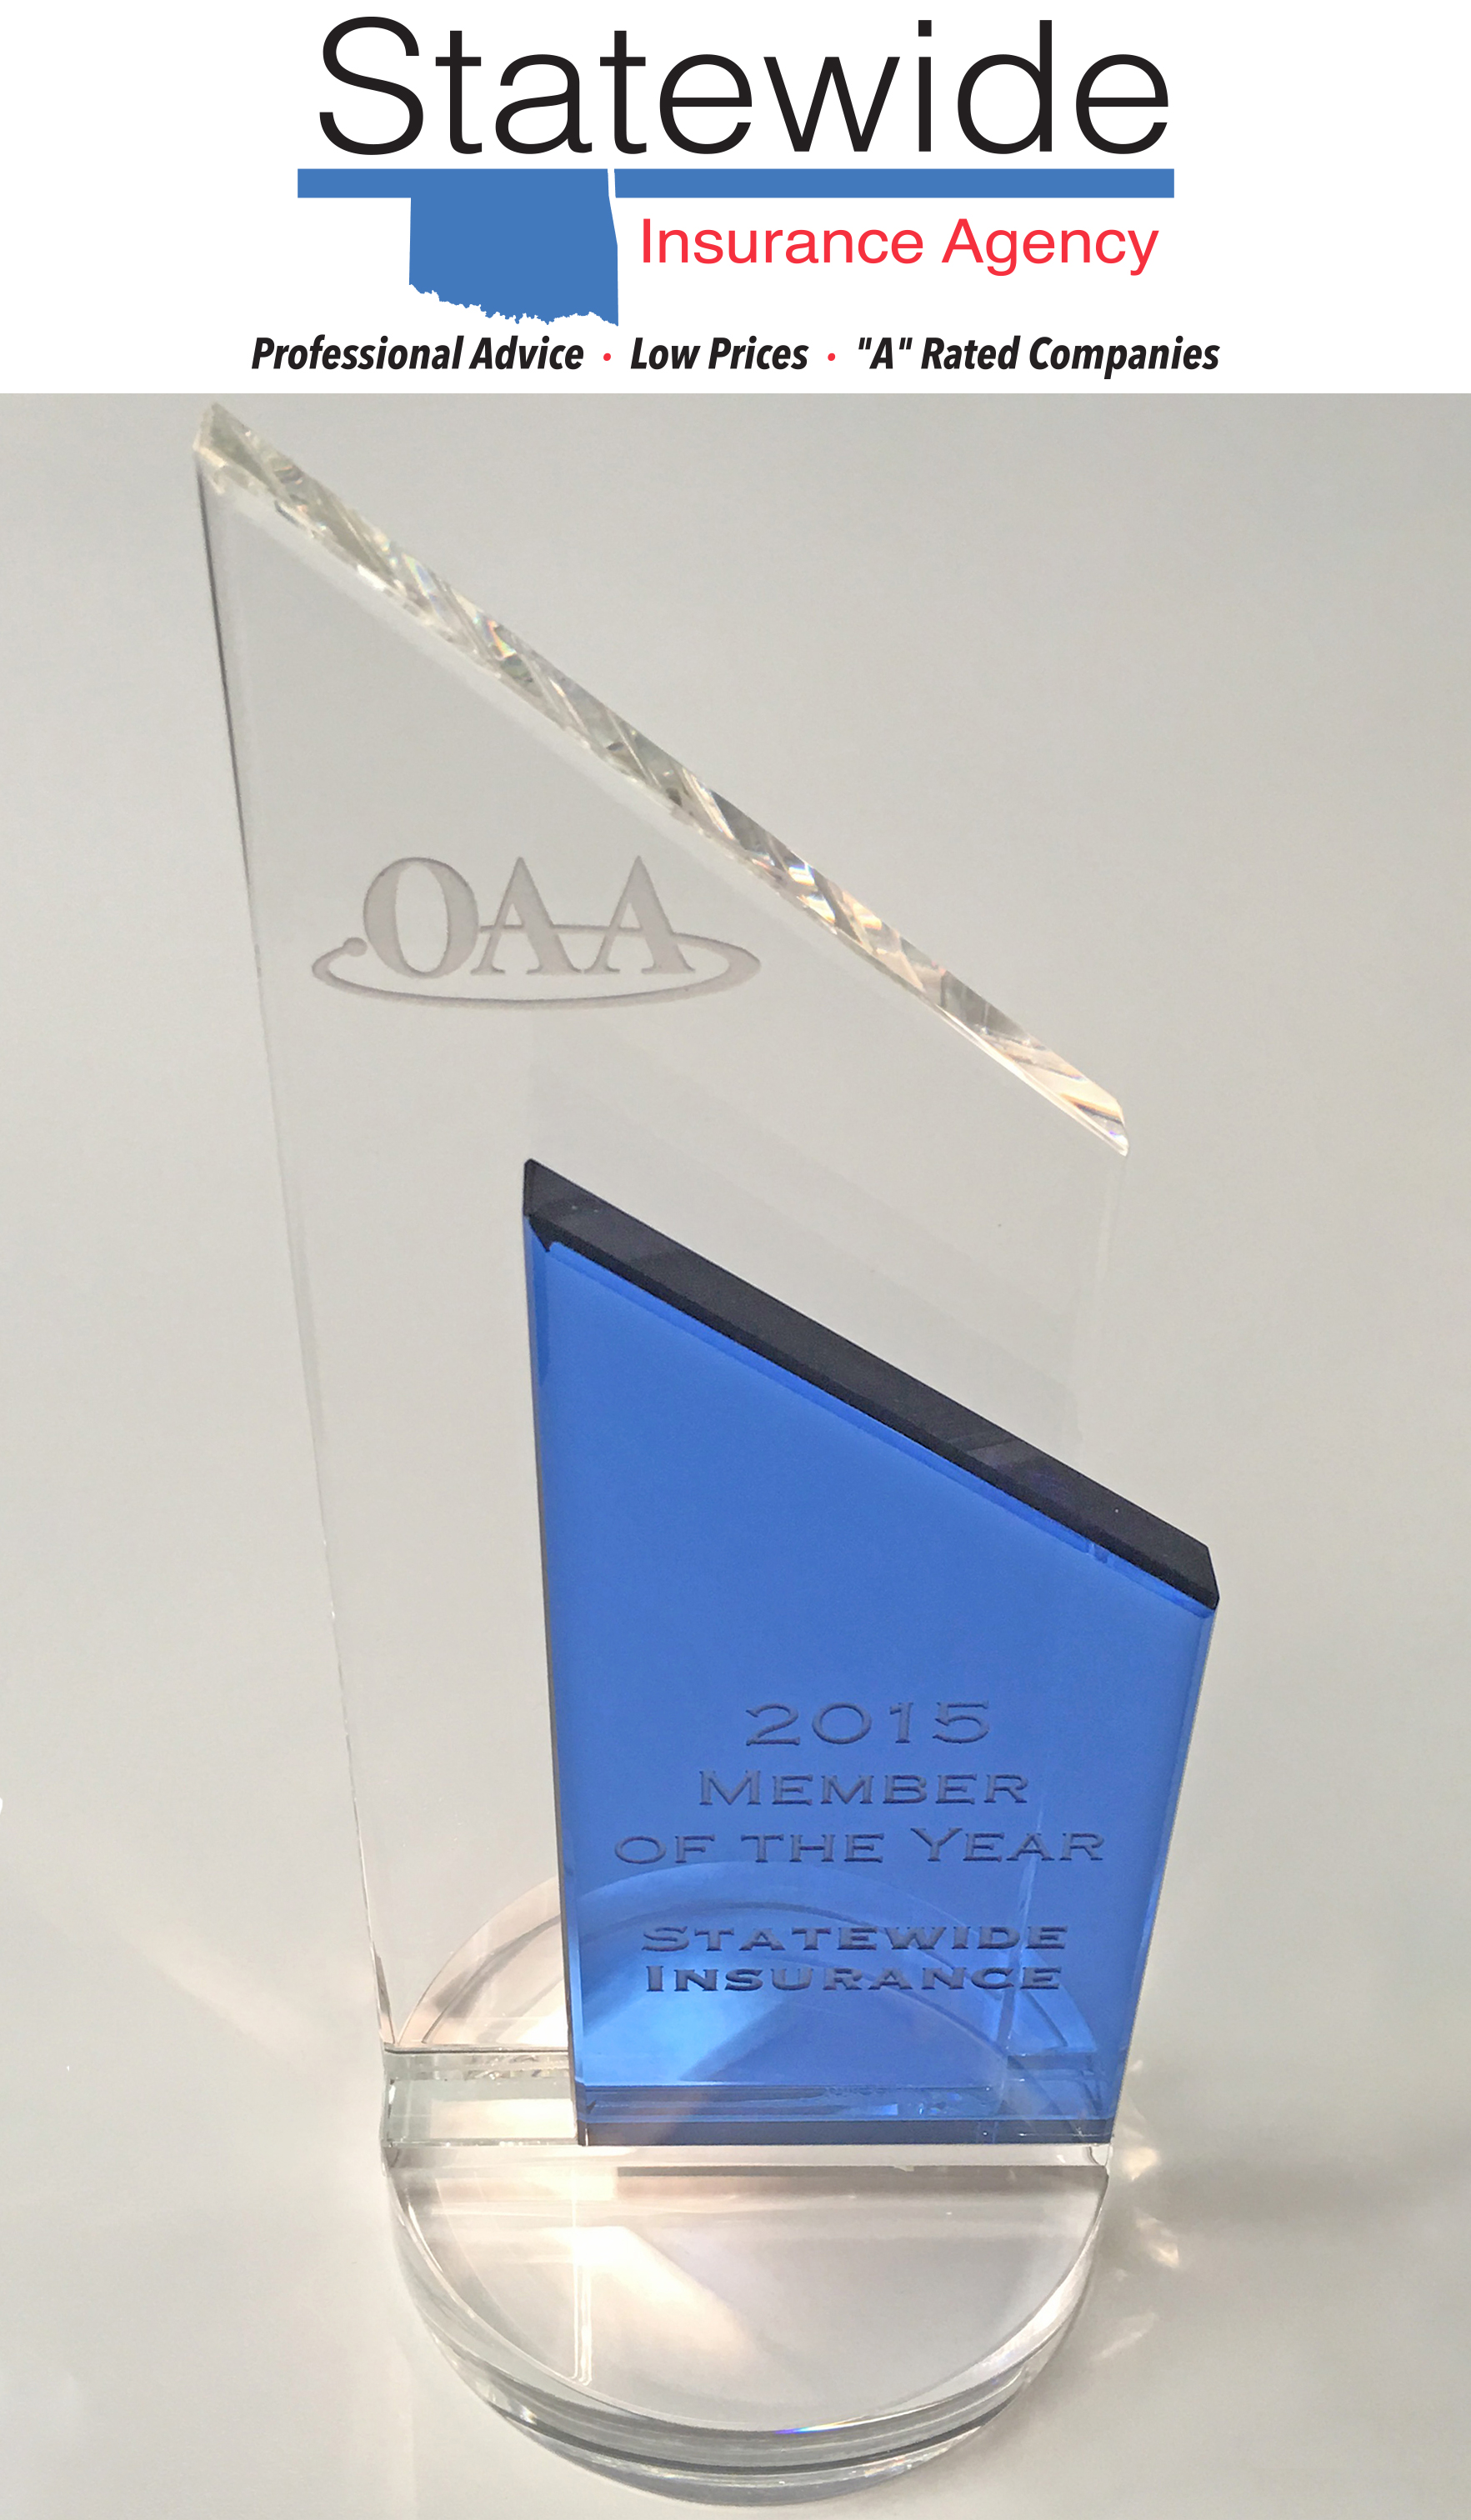 Oklahoma Agents Alliance [OAA] 2015 Member of the Year